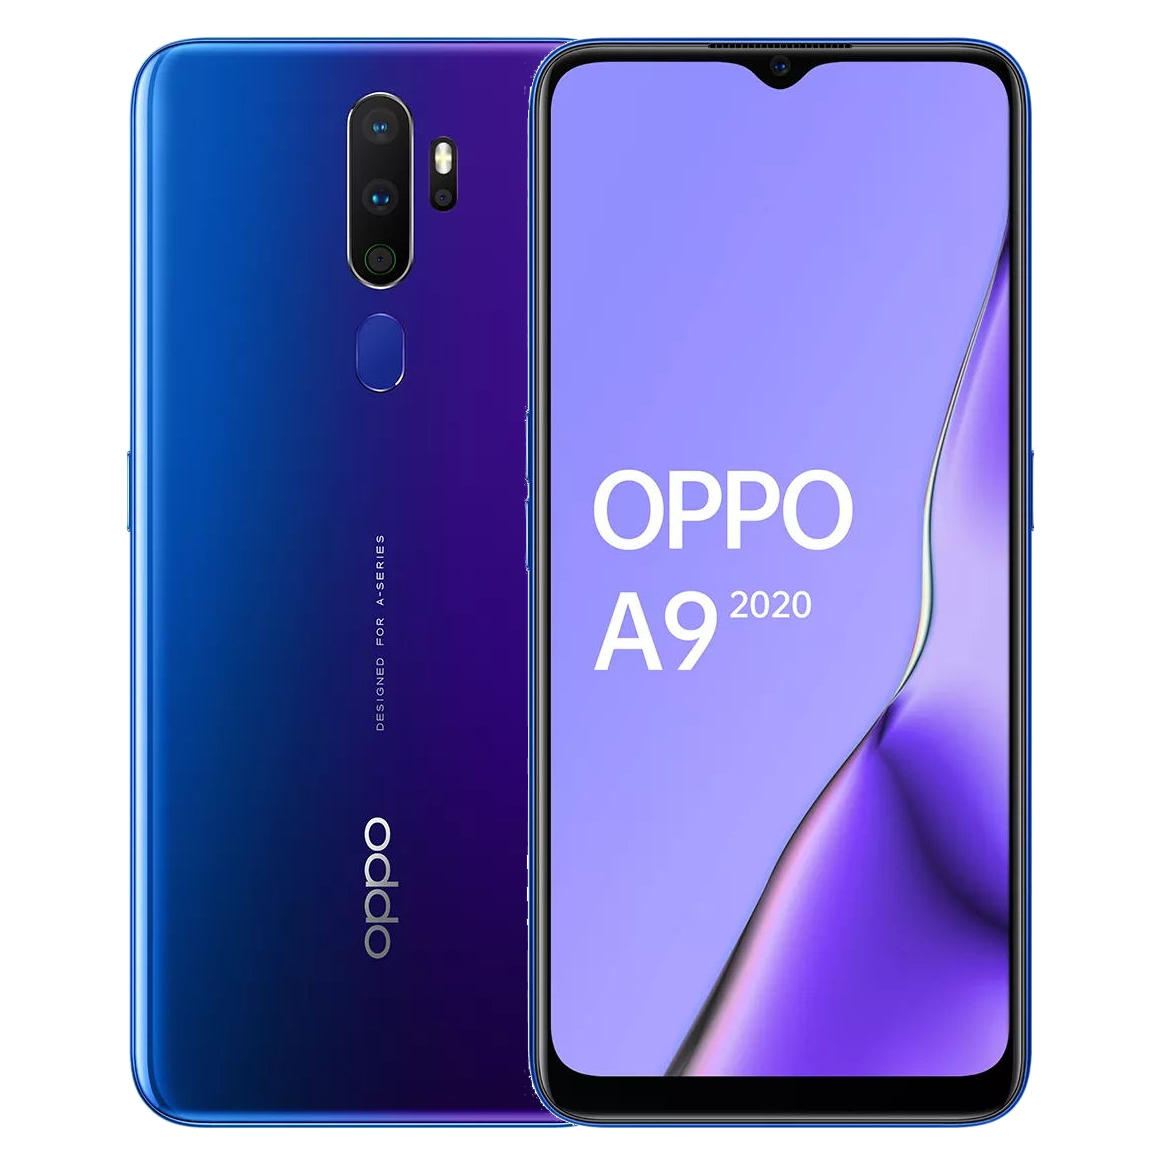 OPPO A9 2020 6.5 inch HD+ 5000mAh Android 9.0 48MP Quad Rear Cameras 8GB 128GB Snapdragon 665 Octa Core 4G Smartphone - Space Purple